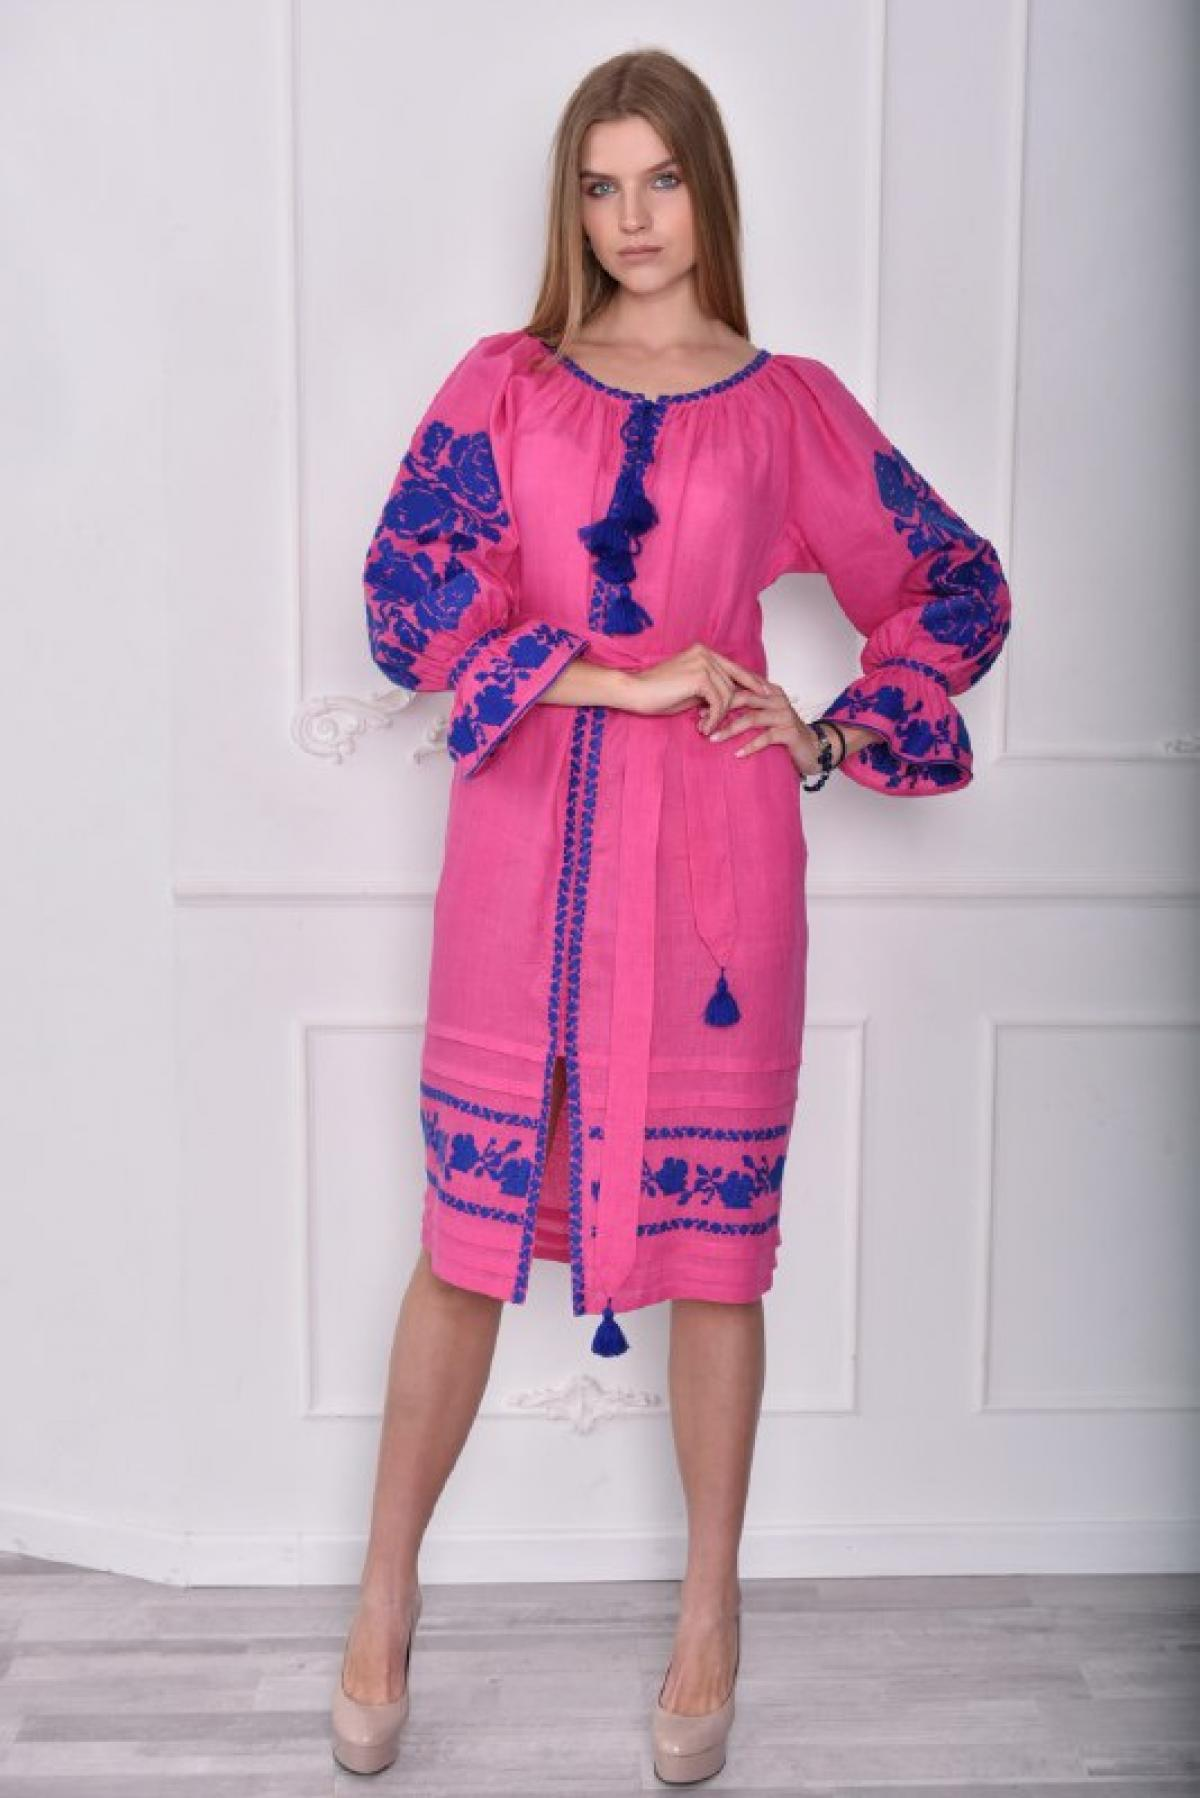 Bright pink dress with blue embroidery. Photo №4. | Narodnyi dim Ukraine